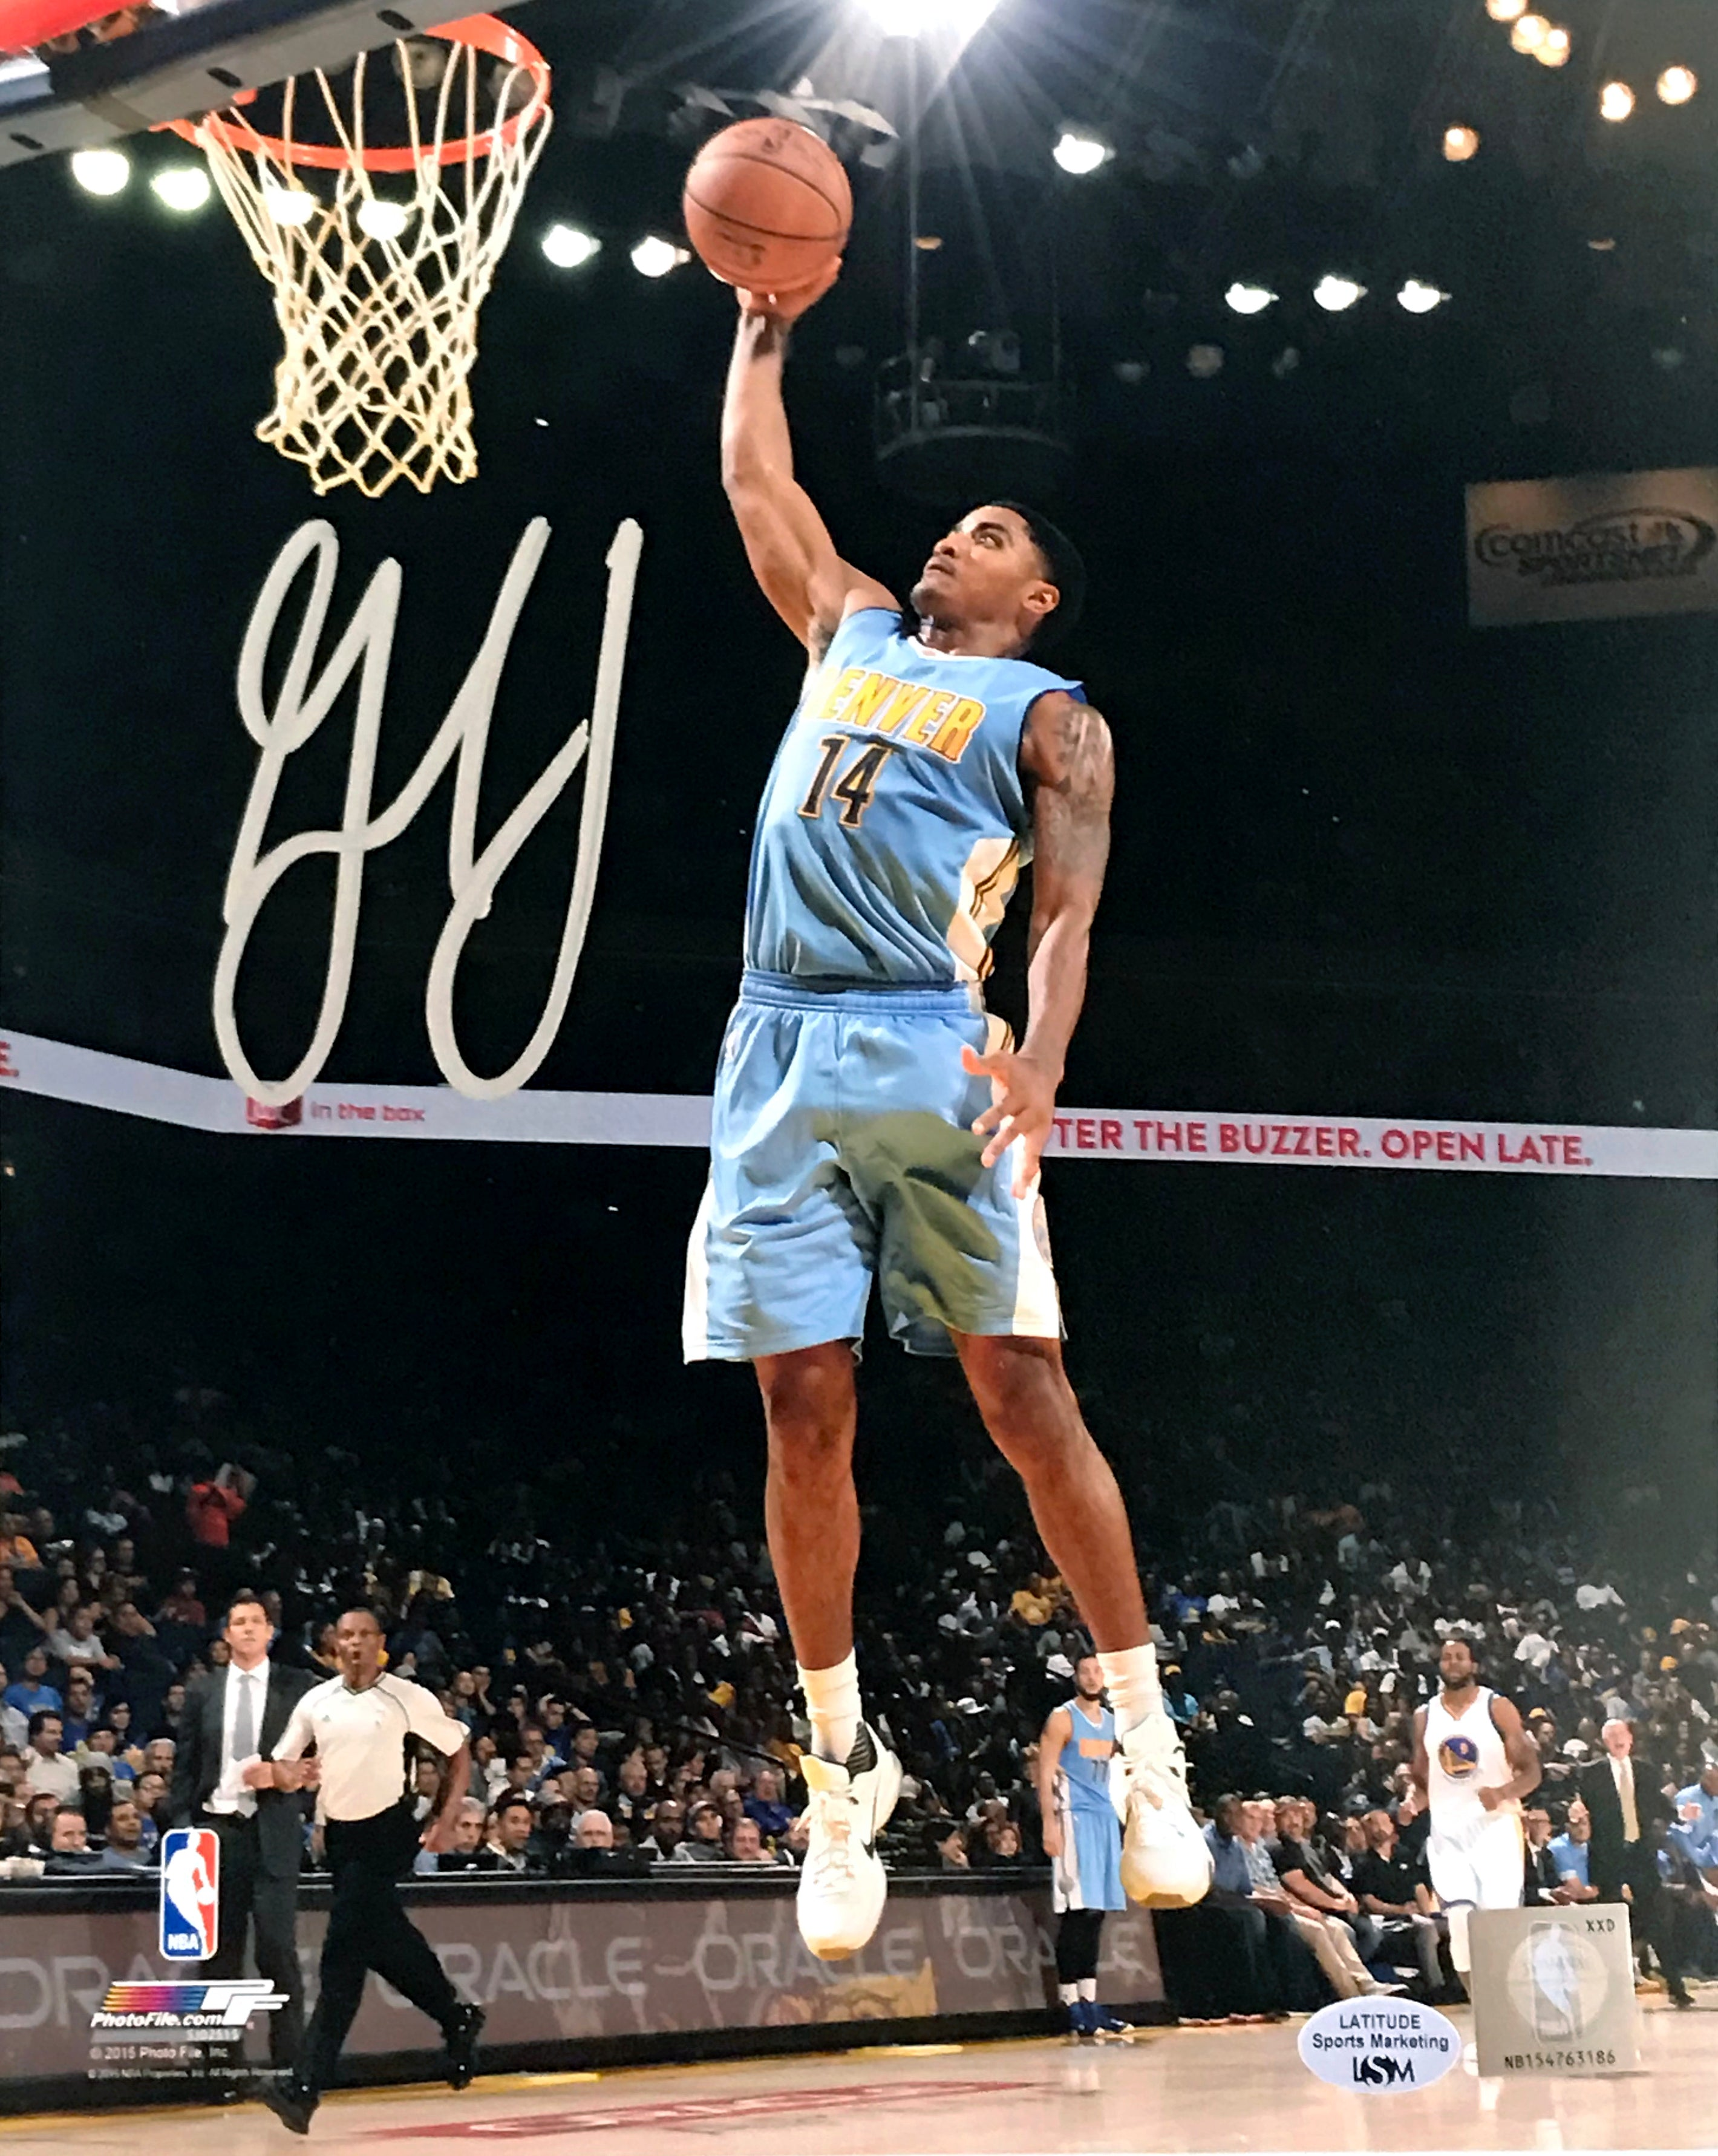 Gary Harris Autographed 8x10 Photo Blue Image of Him Dunking